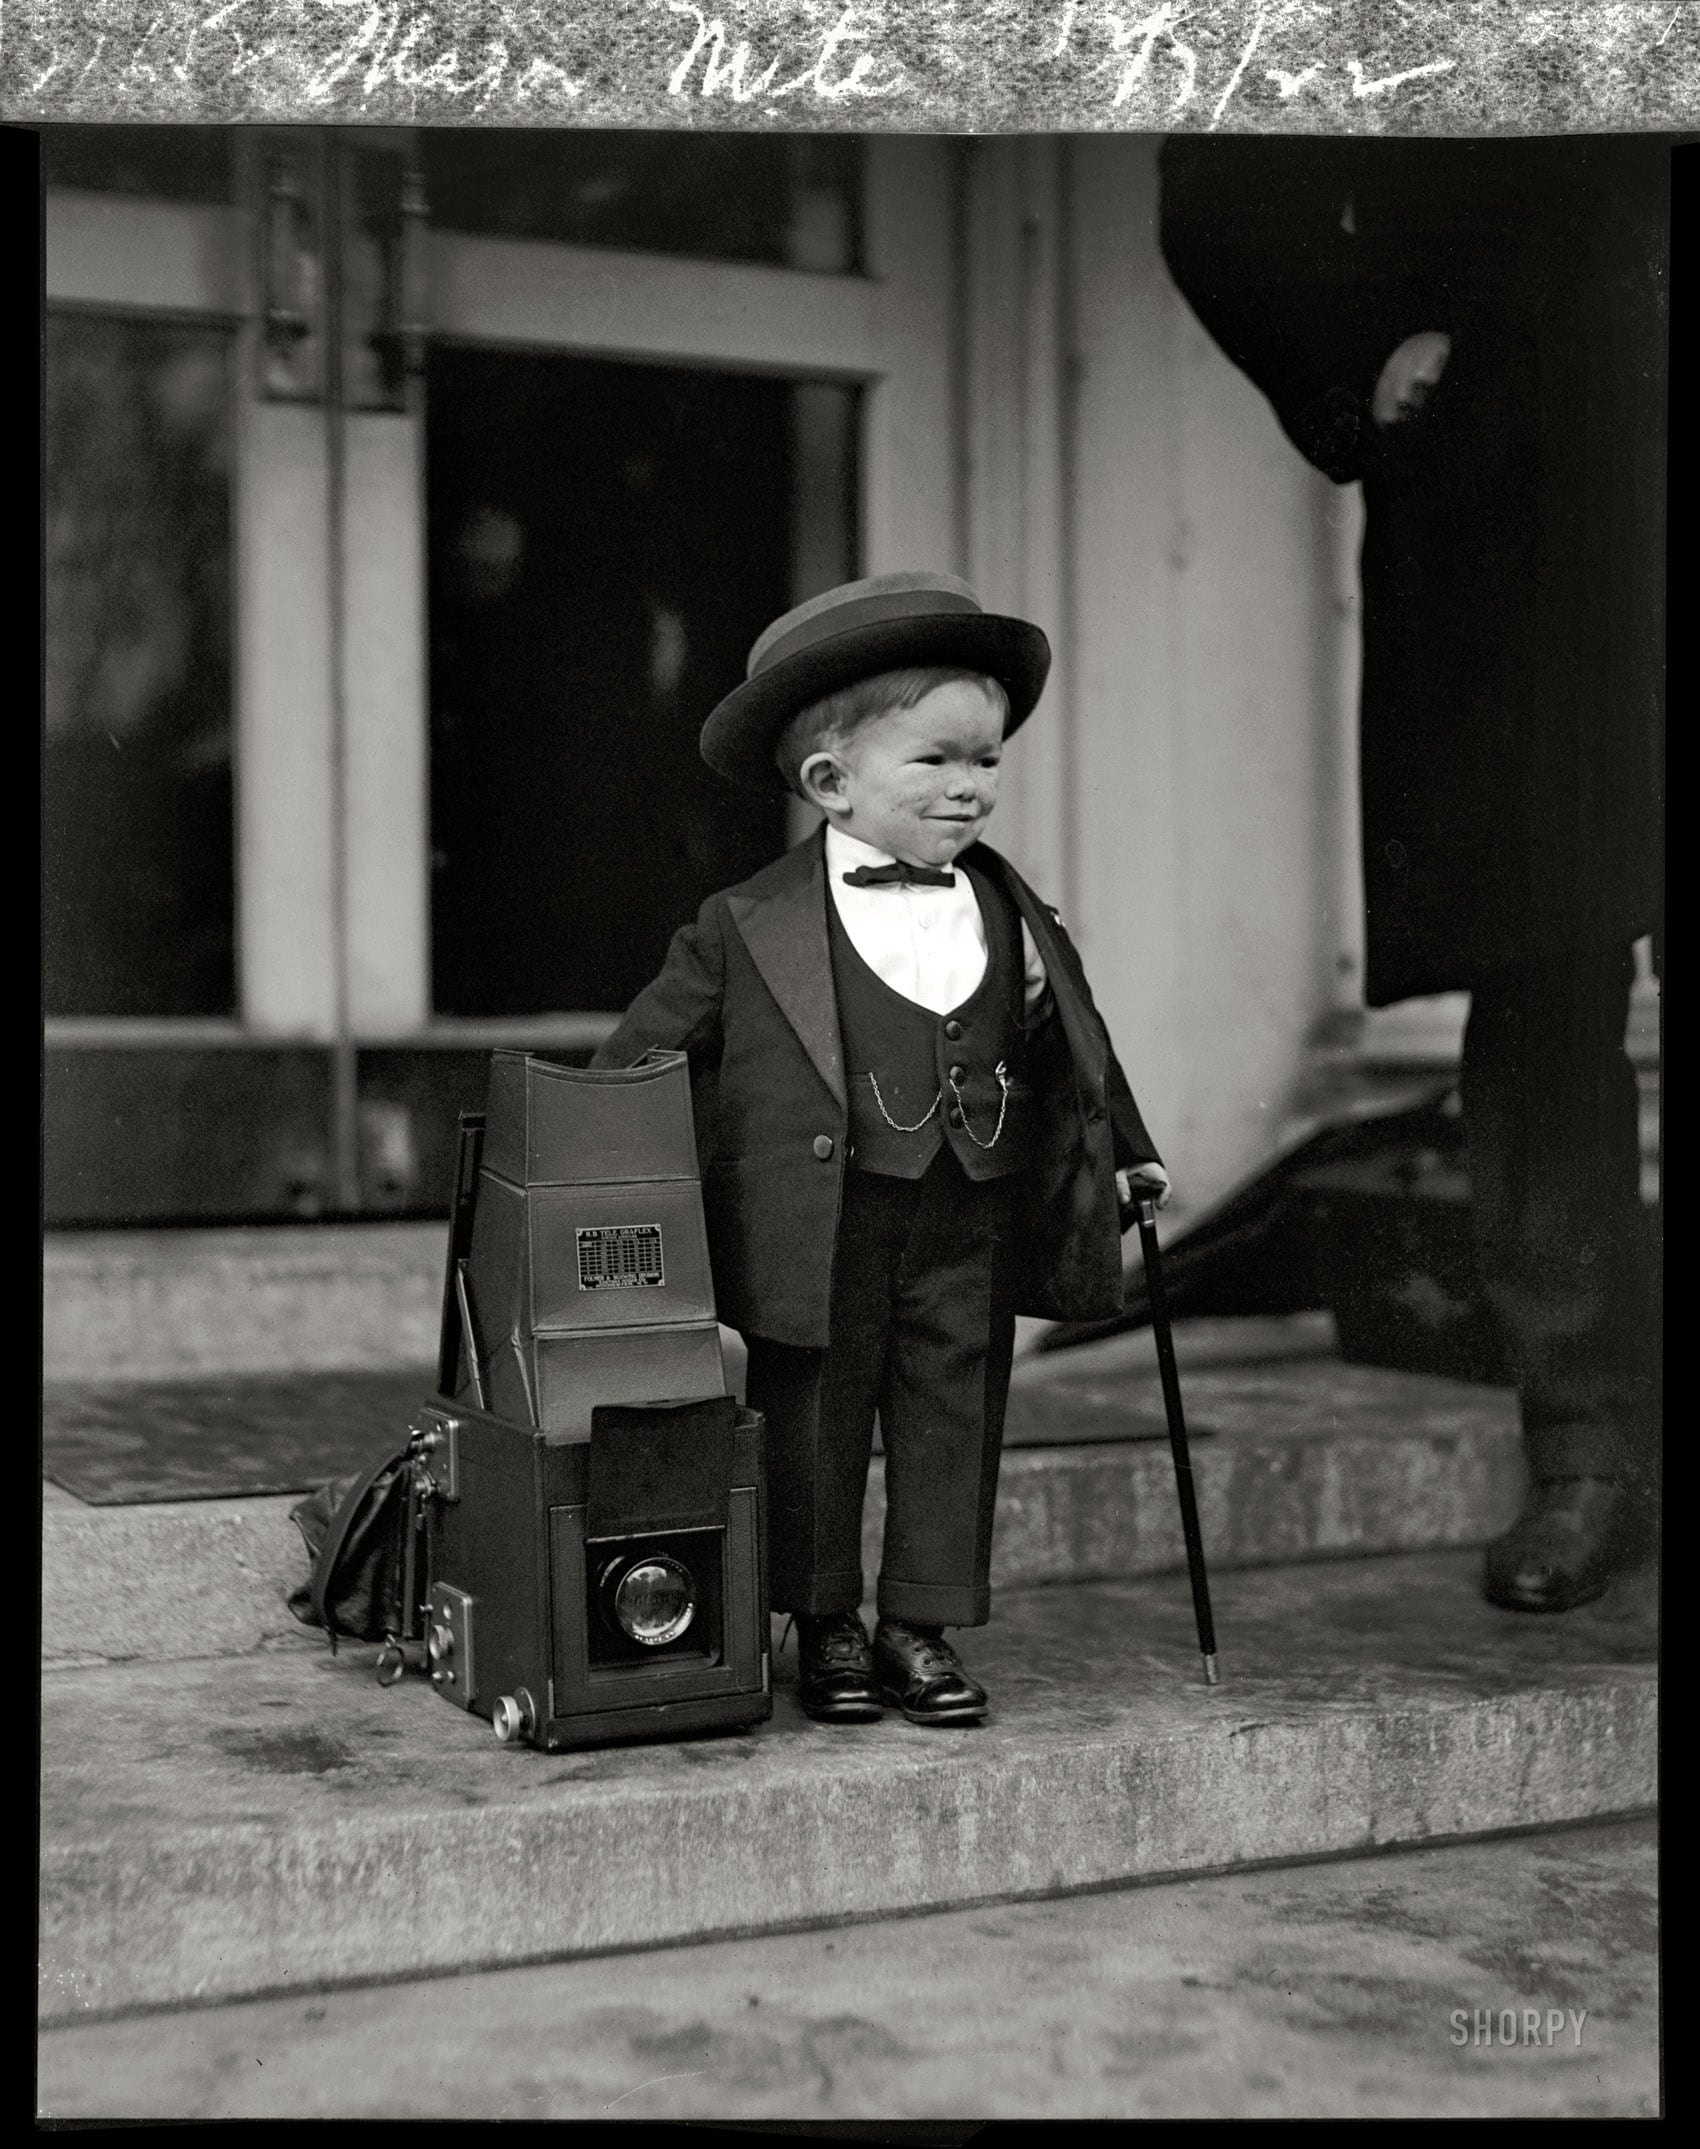 "December 7th, 1922. Washington, D.C. ""Two in one. The smallest midget and smallest 'camel' shriner in existence. Maj. Mite had to skirt the camera left carelessly by a photographer when leaving the White House."" Clarence Chesterfield Howerton (1913-1975), a.k.a. ""Major Mite,"" was 9 years old when this photo was taken. According to his obituary he was in the ""Our Gang"" movies and played a Munchkin in ""The Wizard of Oz."" National Photo Co."